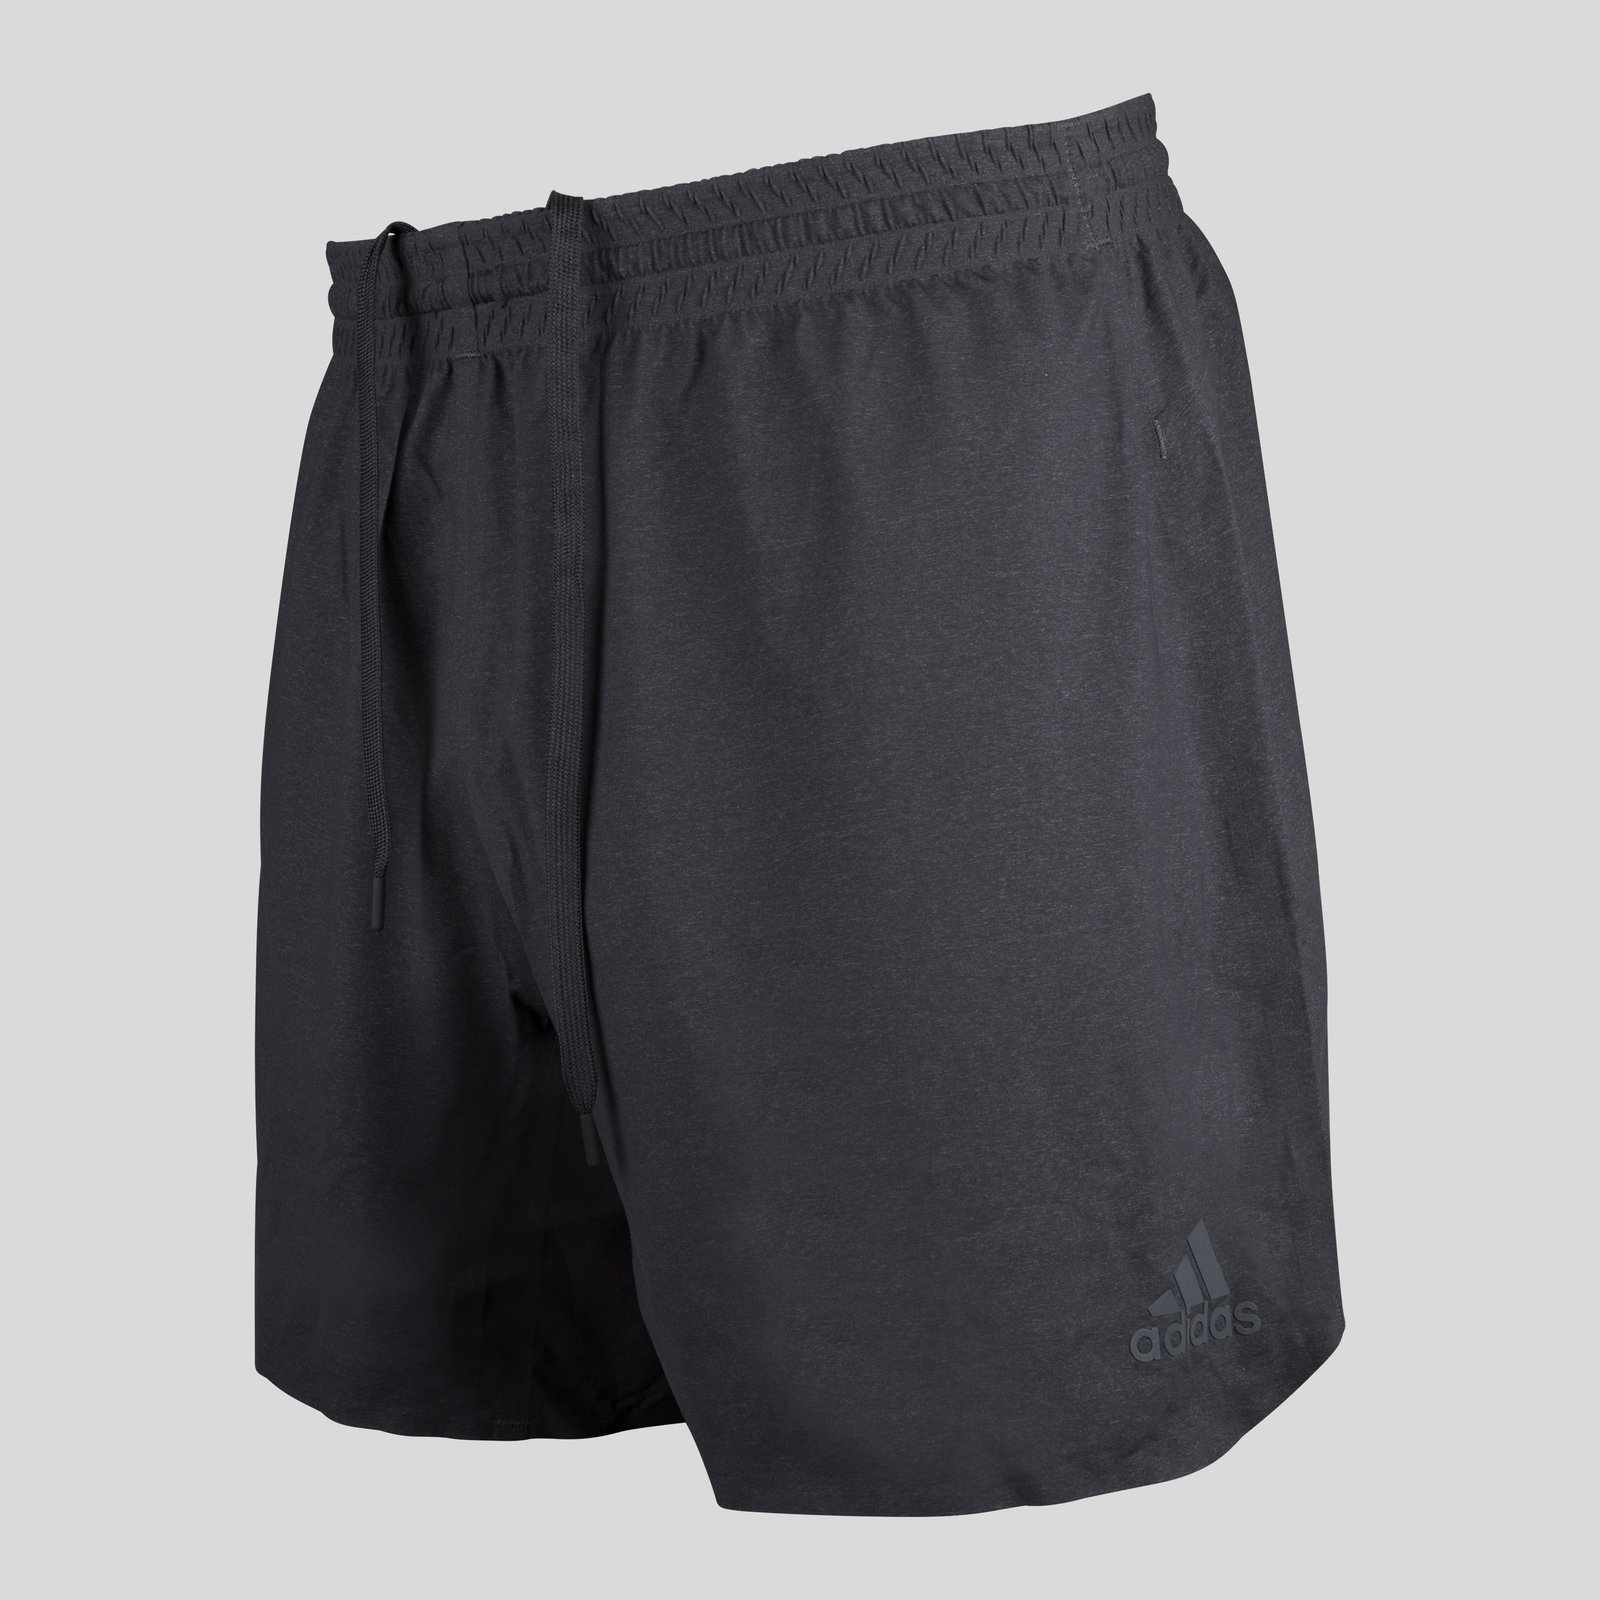 Image of 4KRFT ClimaLite Ultra Light Training Shorts